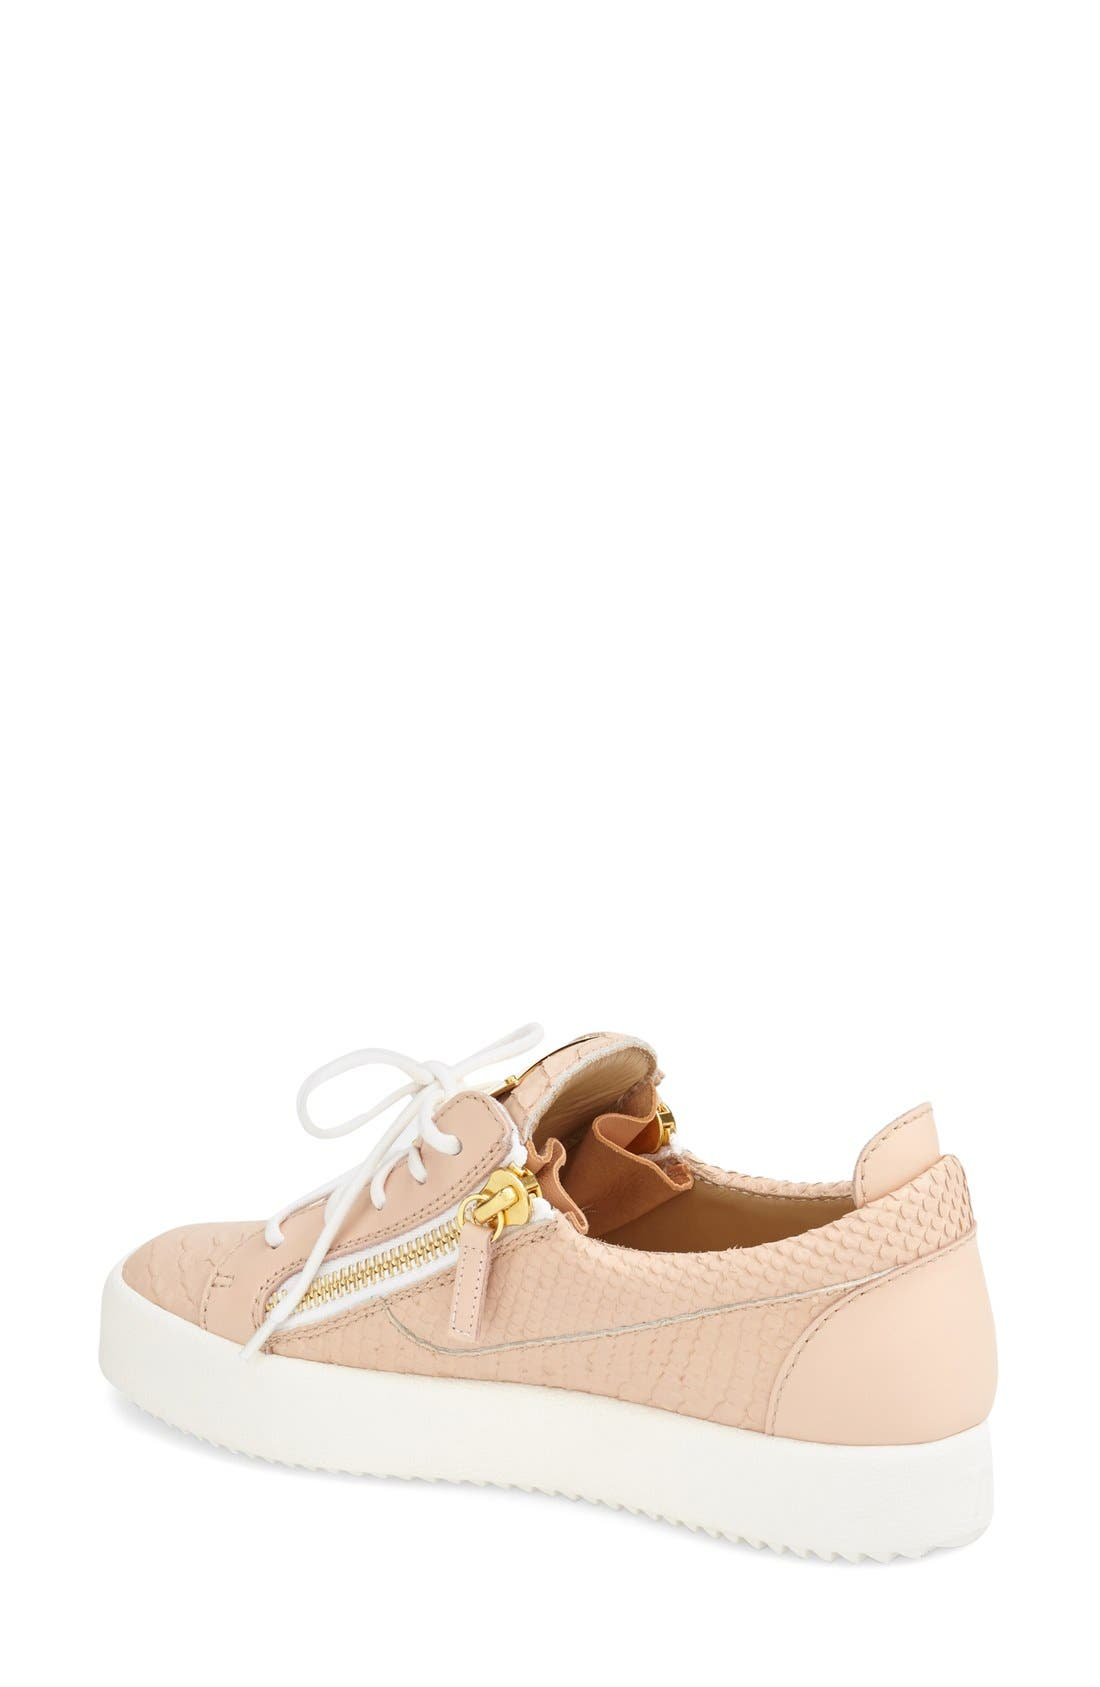 'May London' Snake Embossed Low Top Sneaker,                             Alternate thumbnail 2, color,                             Nude Leather